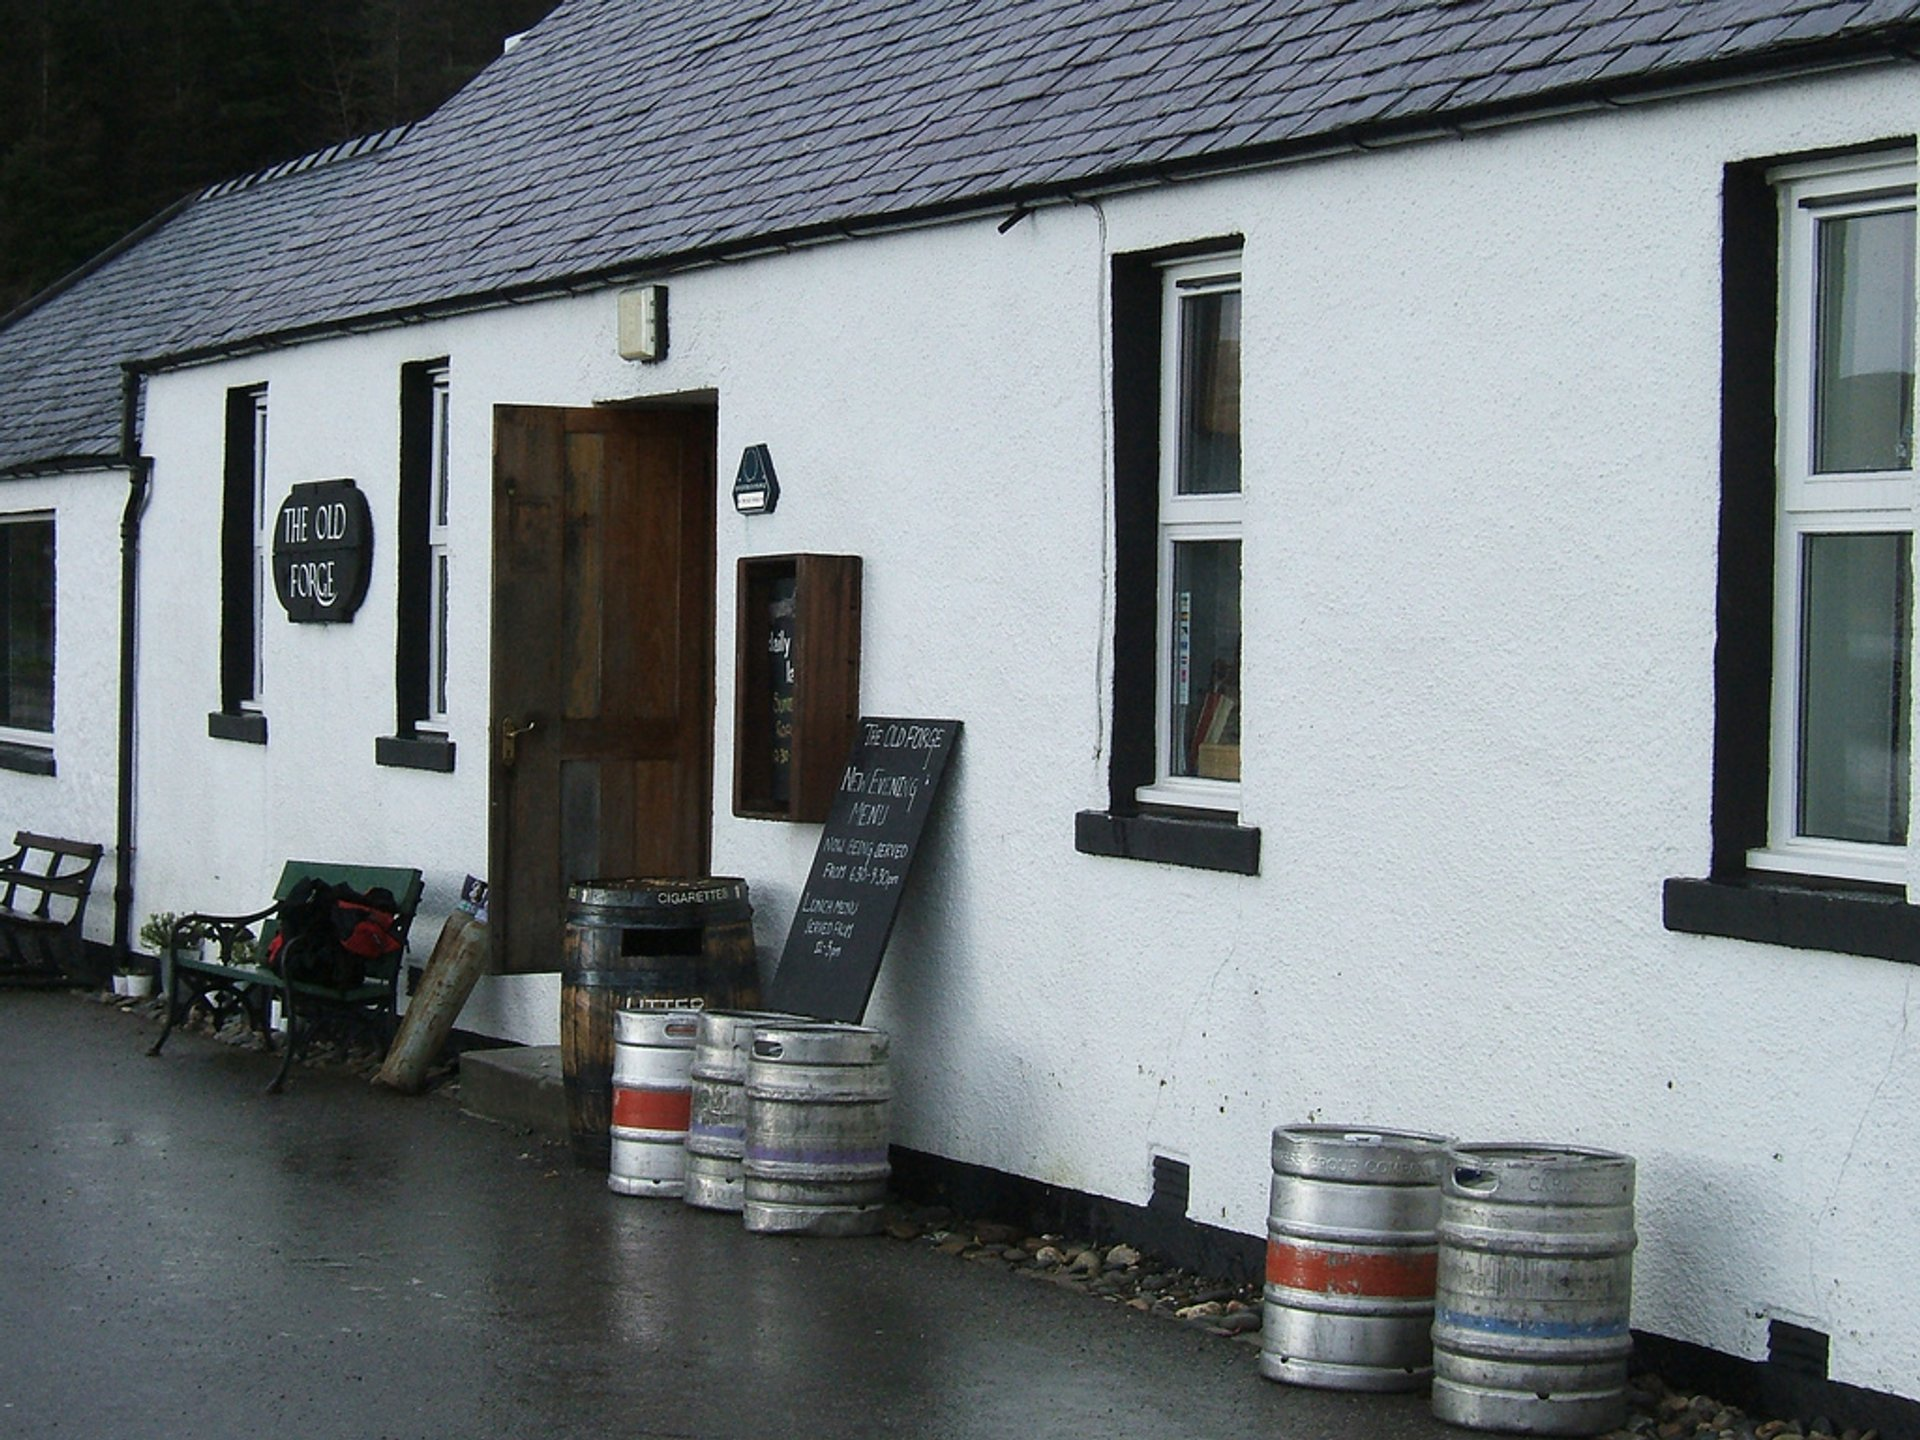 Scotland's Most Remote Pub in Scotland - Best Season 2019